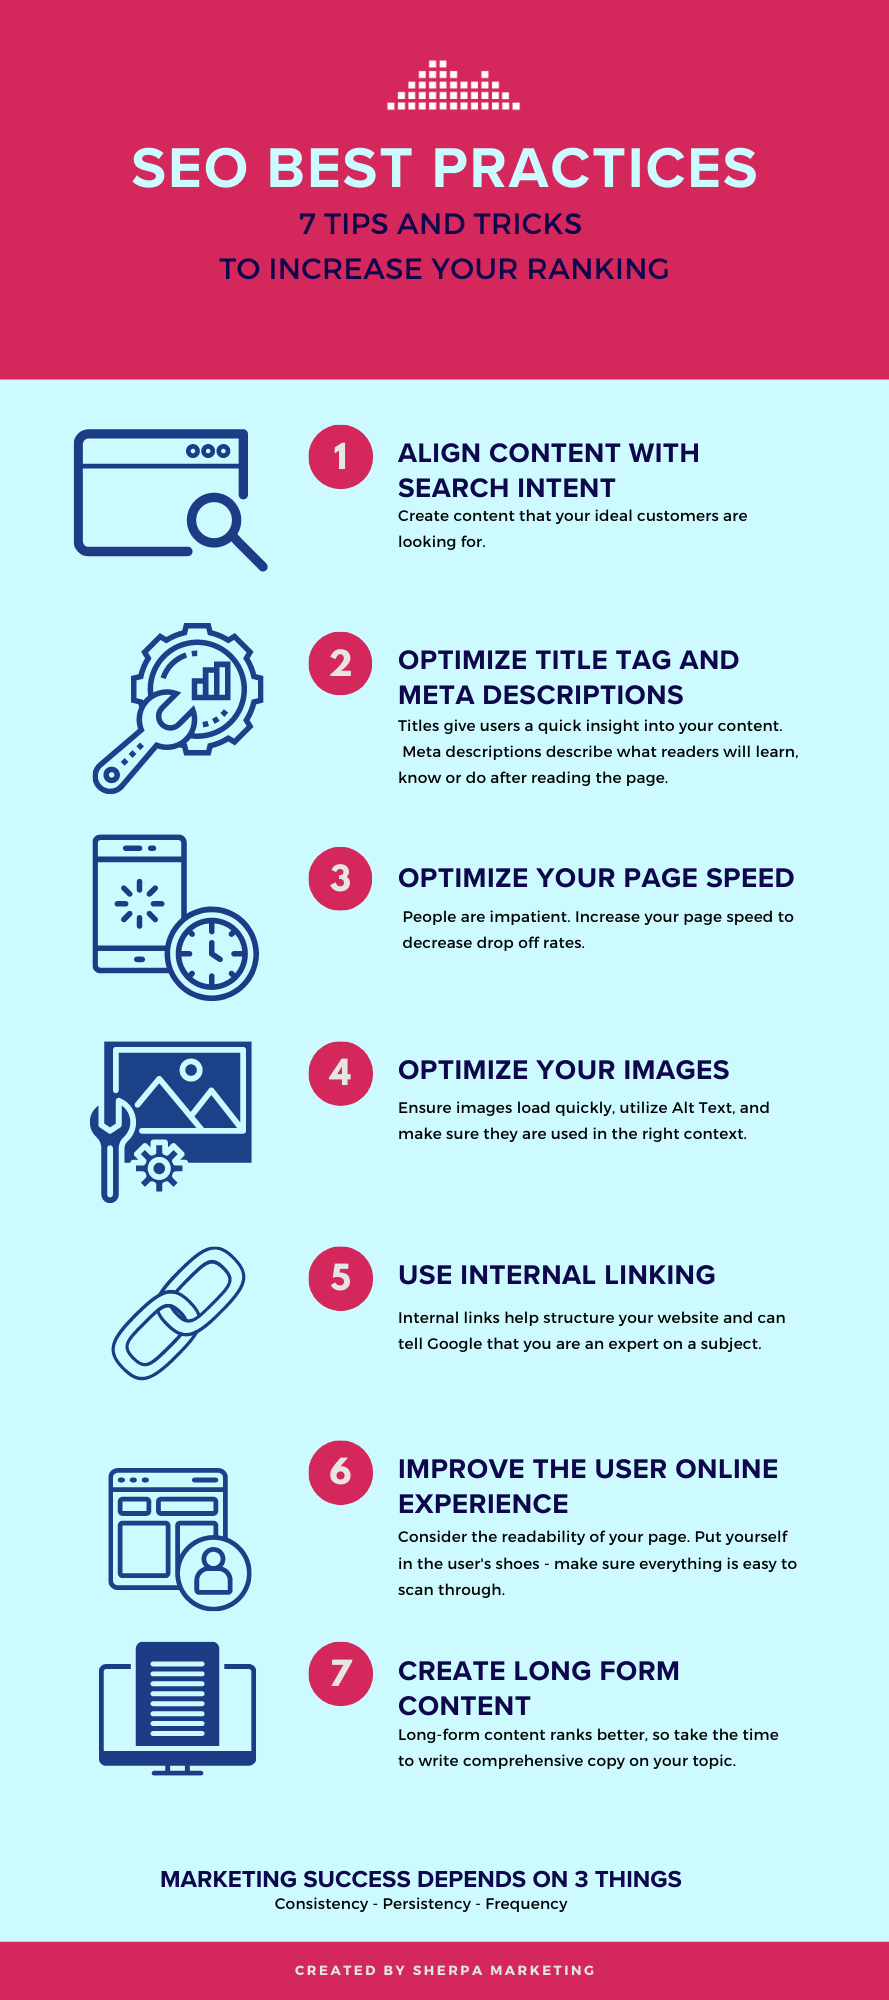 7 tips and tricks to increase your SEO Ranking